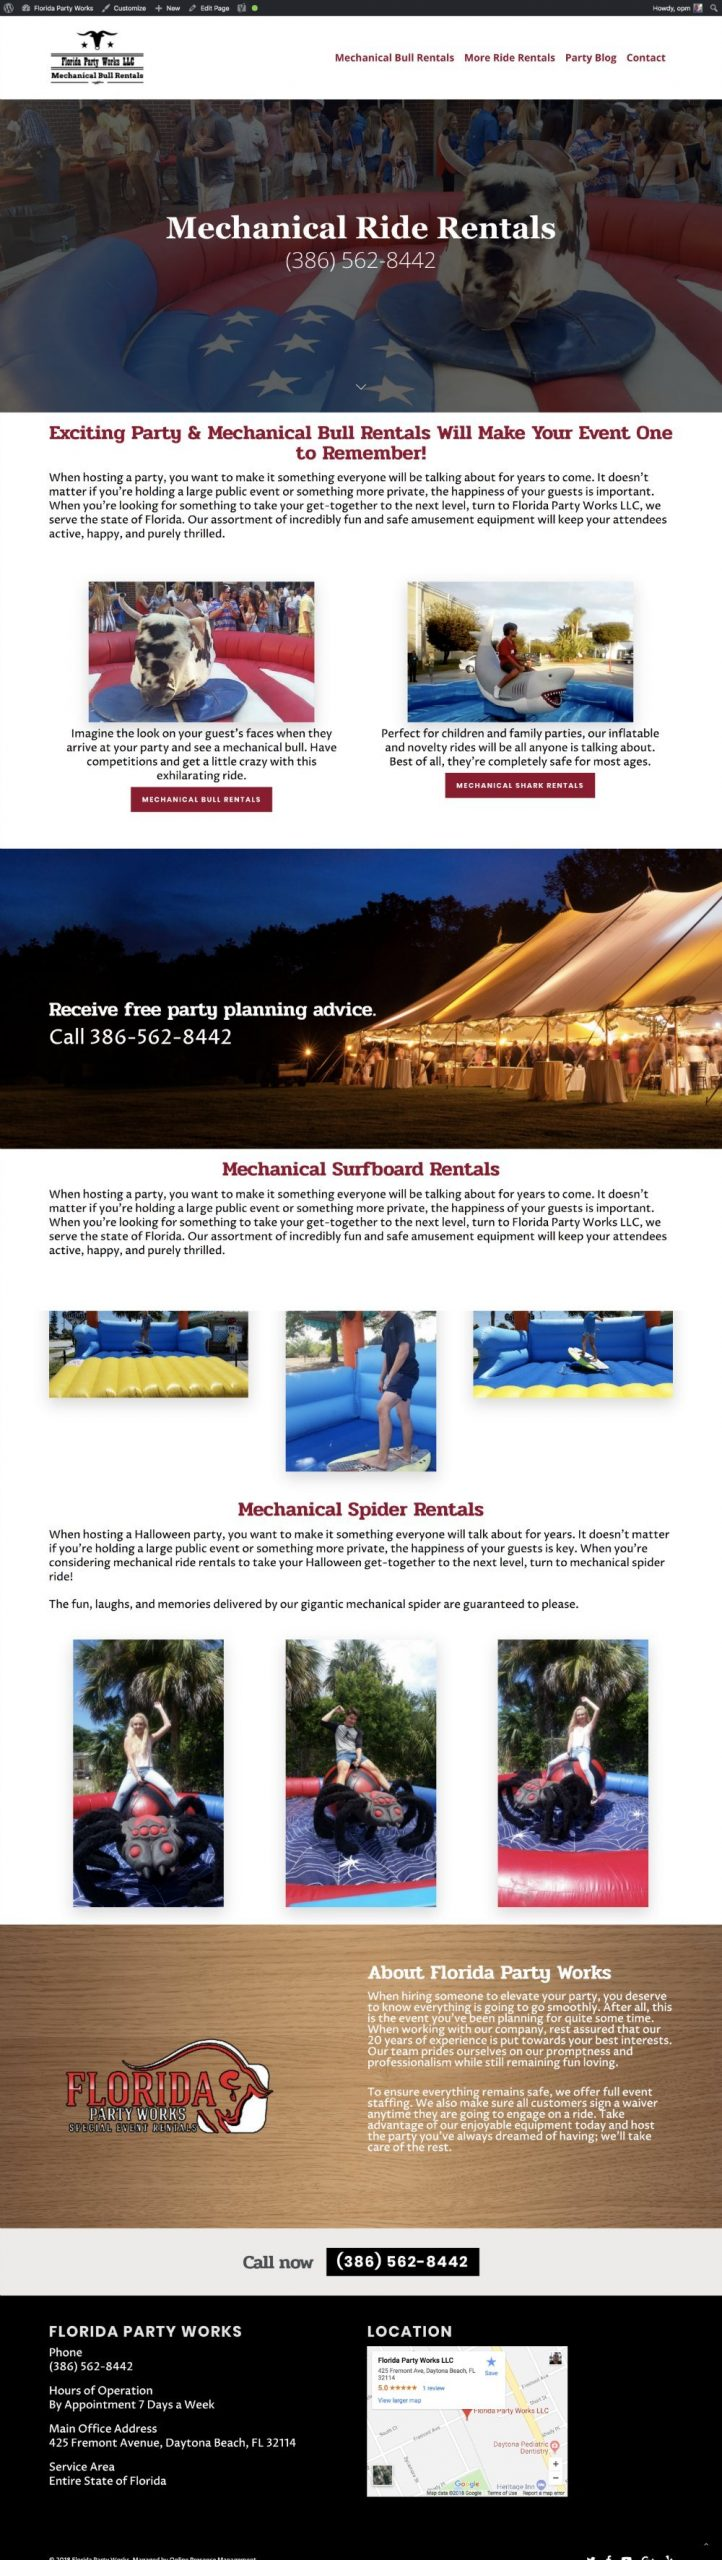 Web Design Mechanical Bull Rental